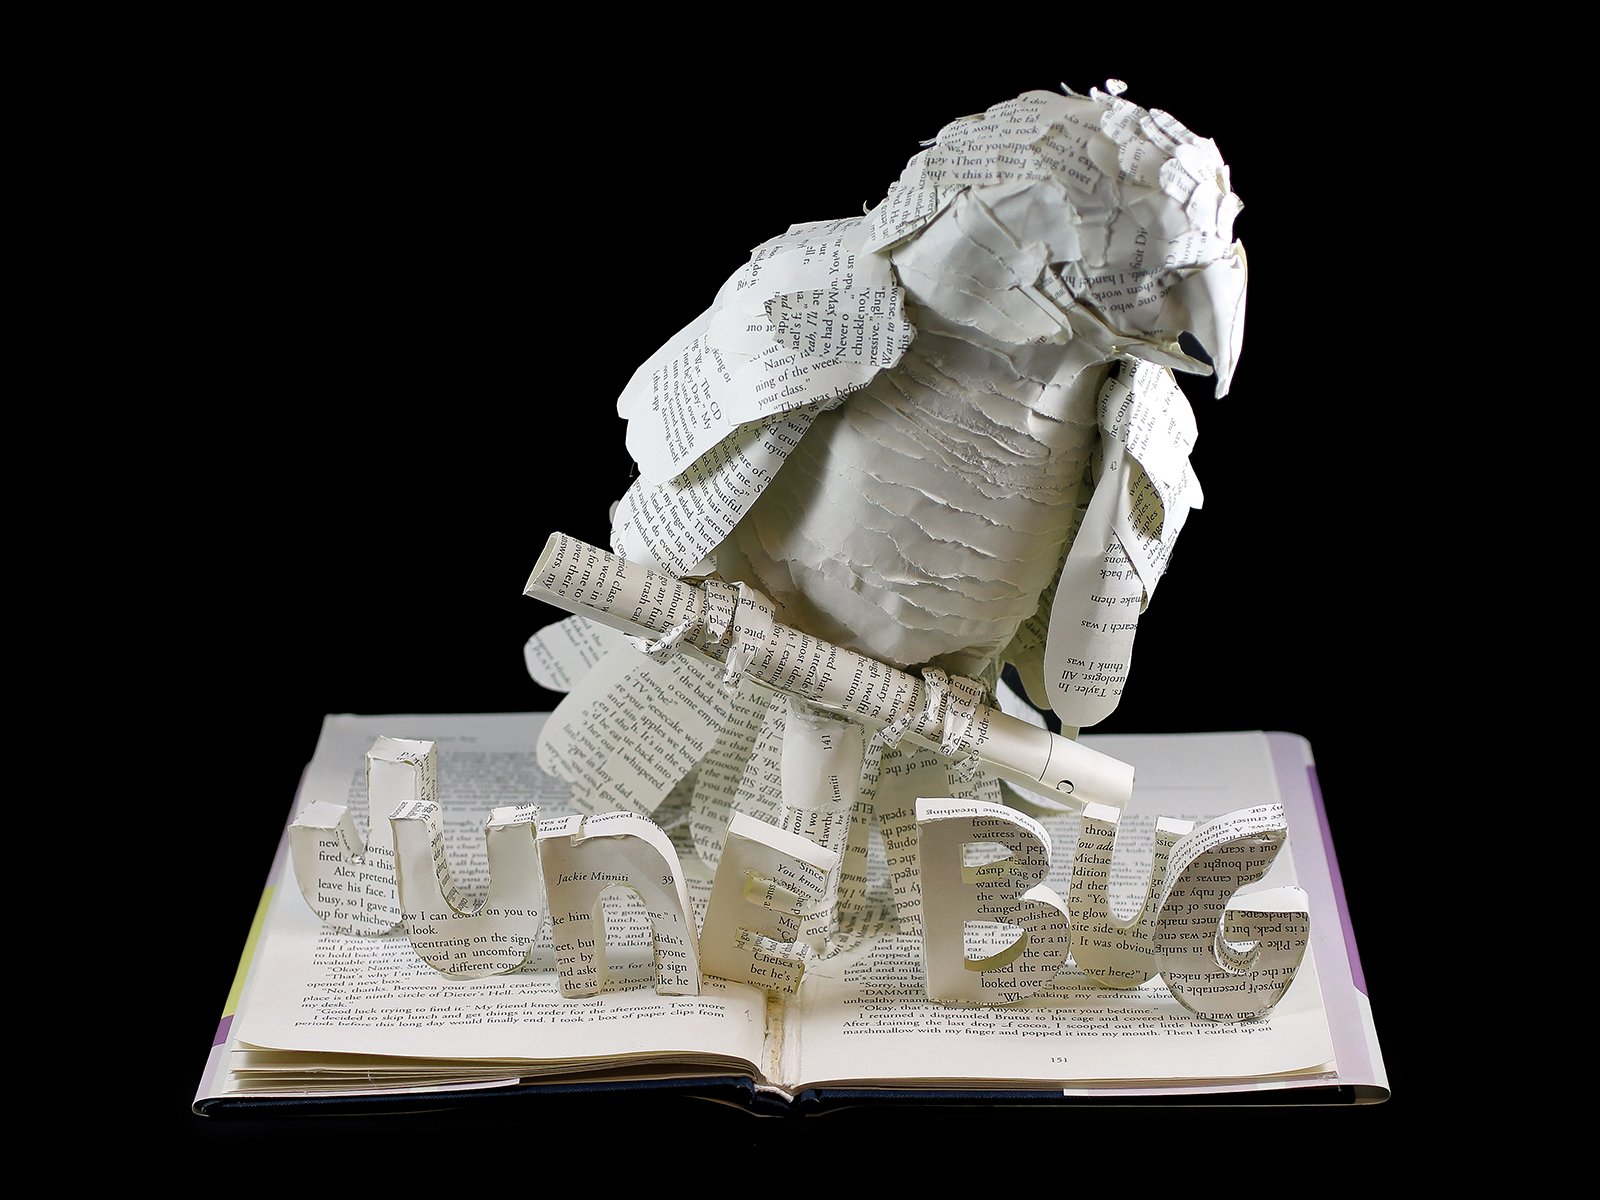 Project Junebug macaw book sculpture by jamie b. hannigan